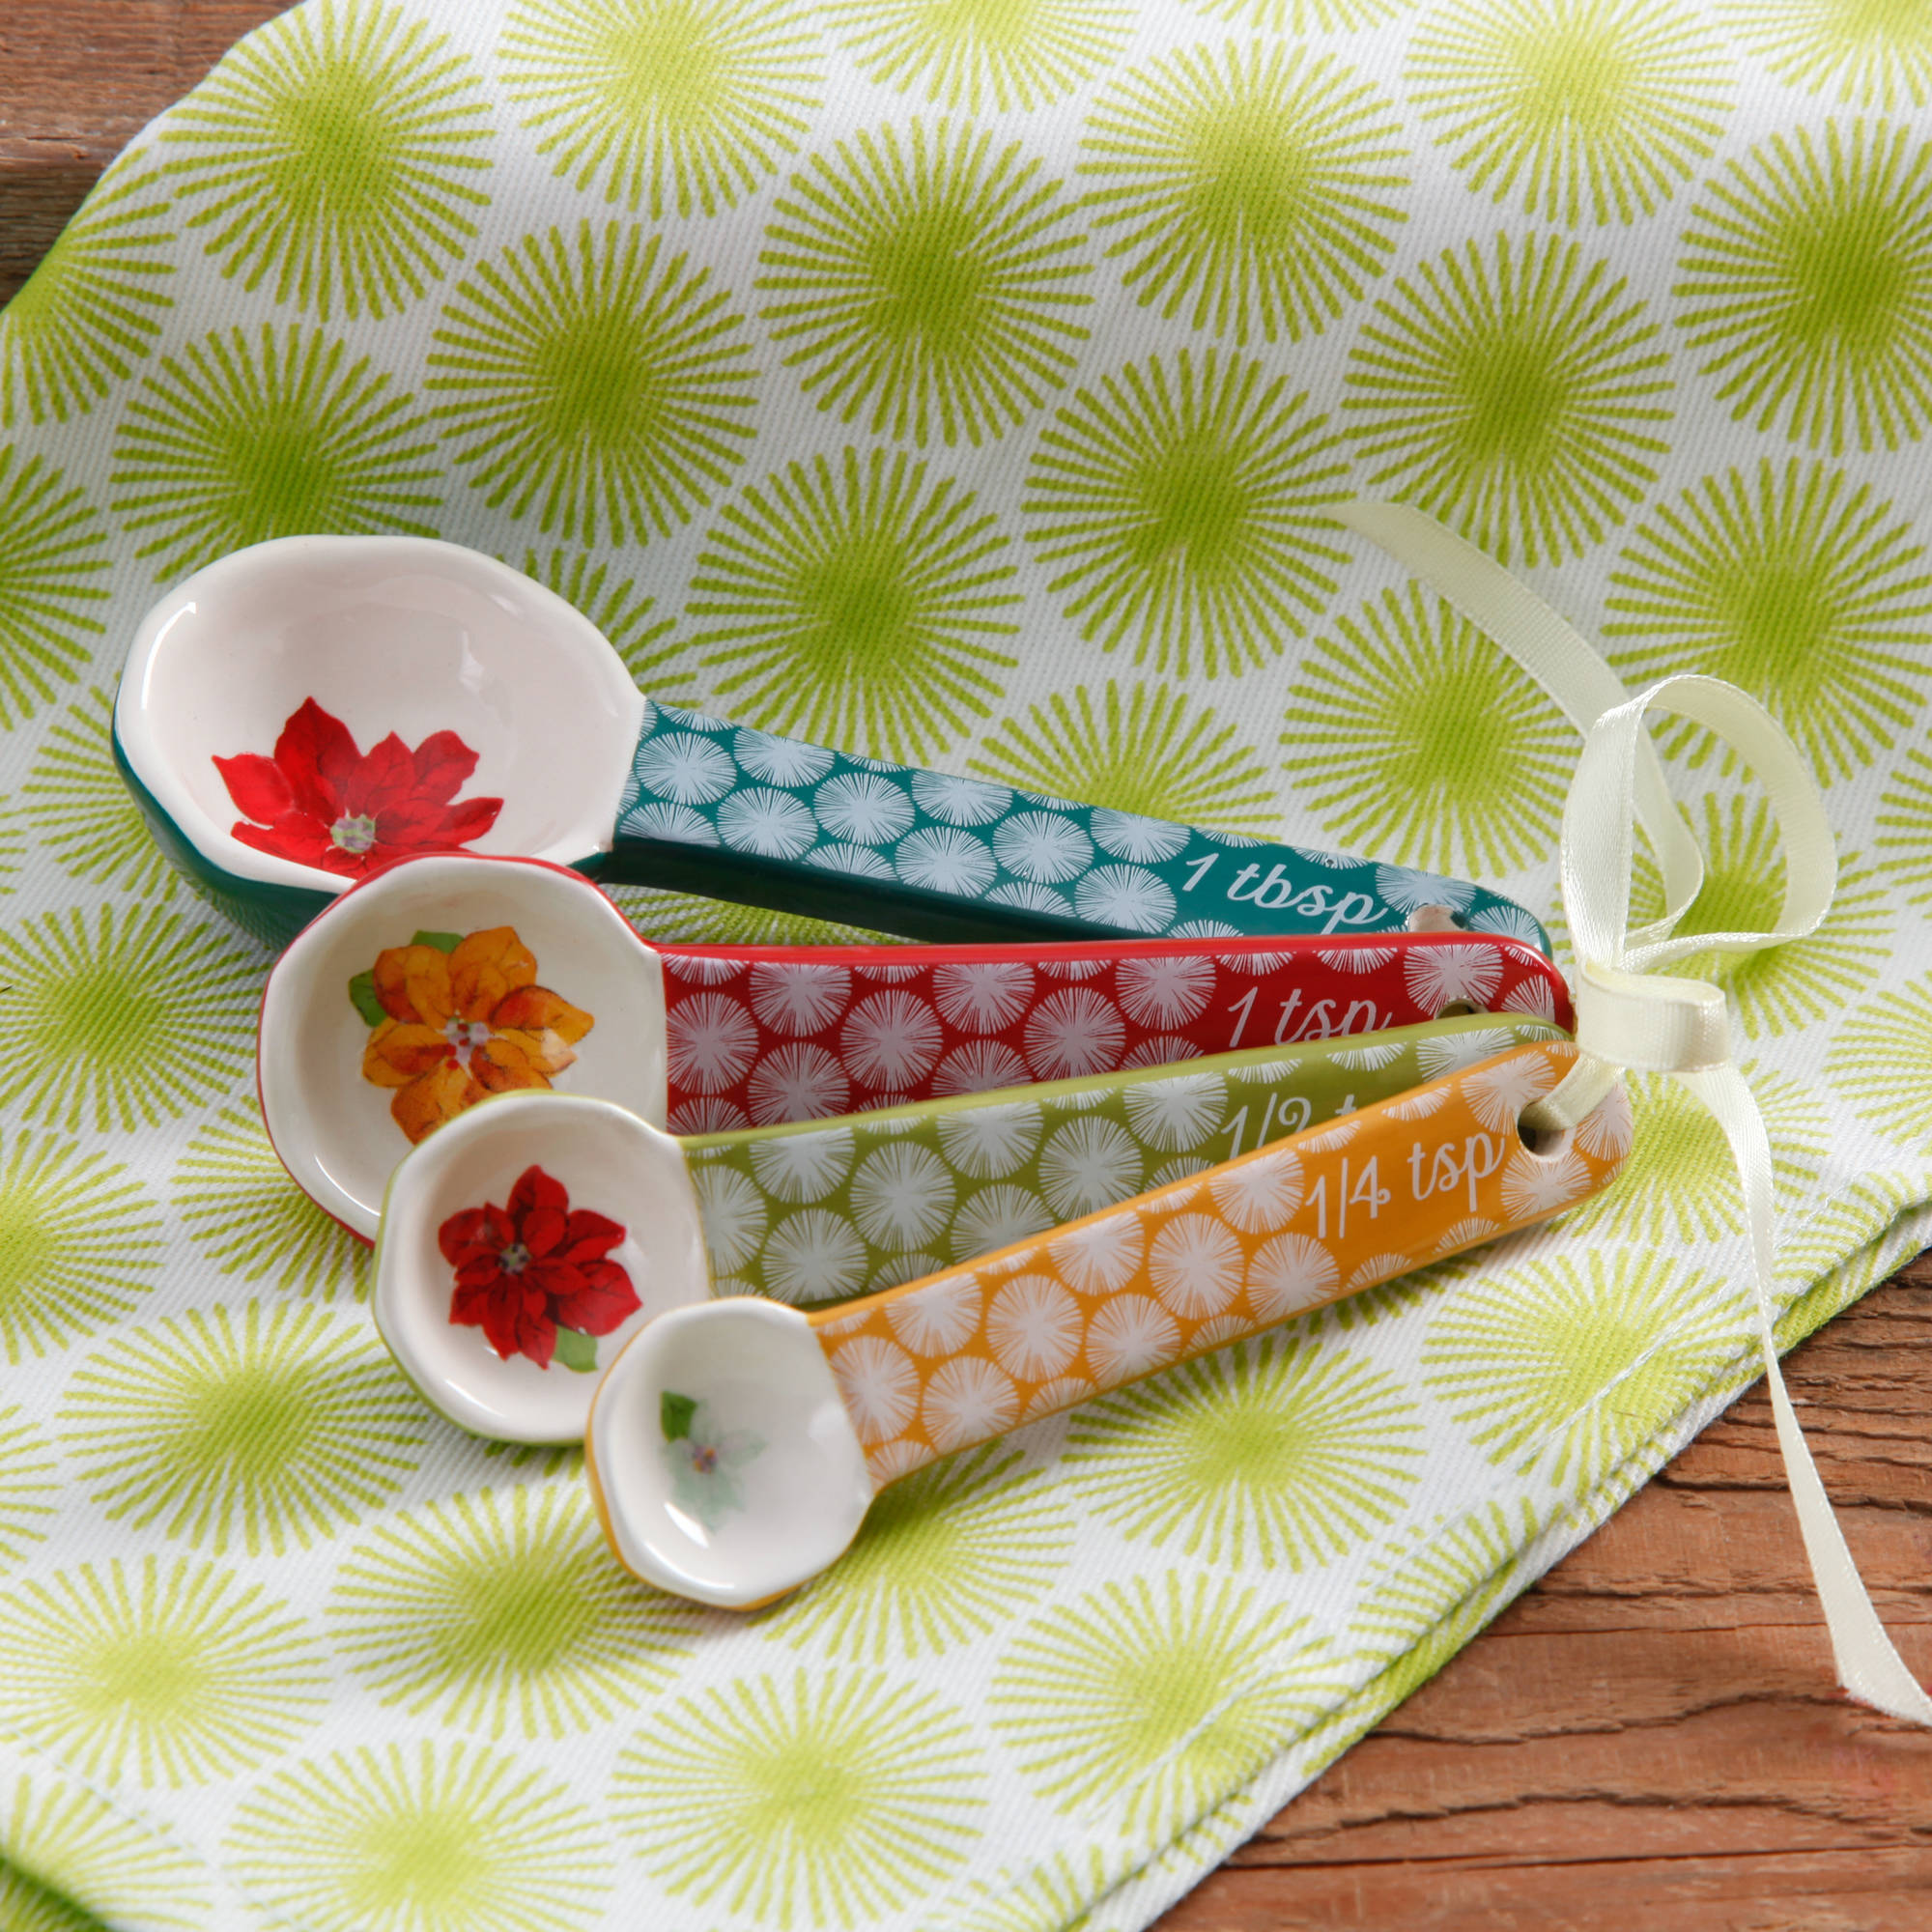 The Pioneer Woman Ceramic Platens Happiness Measure Salad, 1 Each